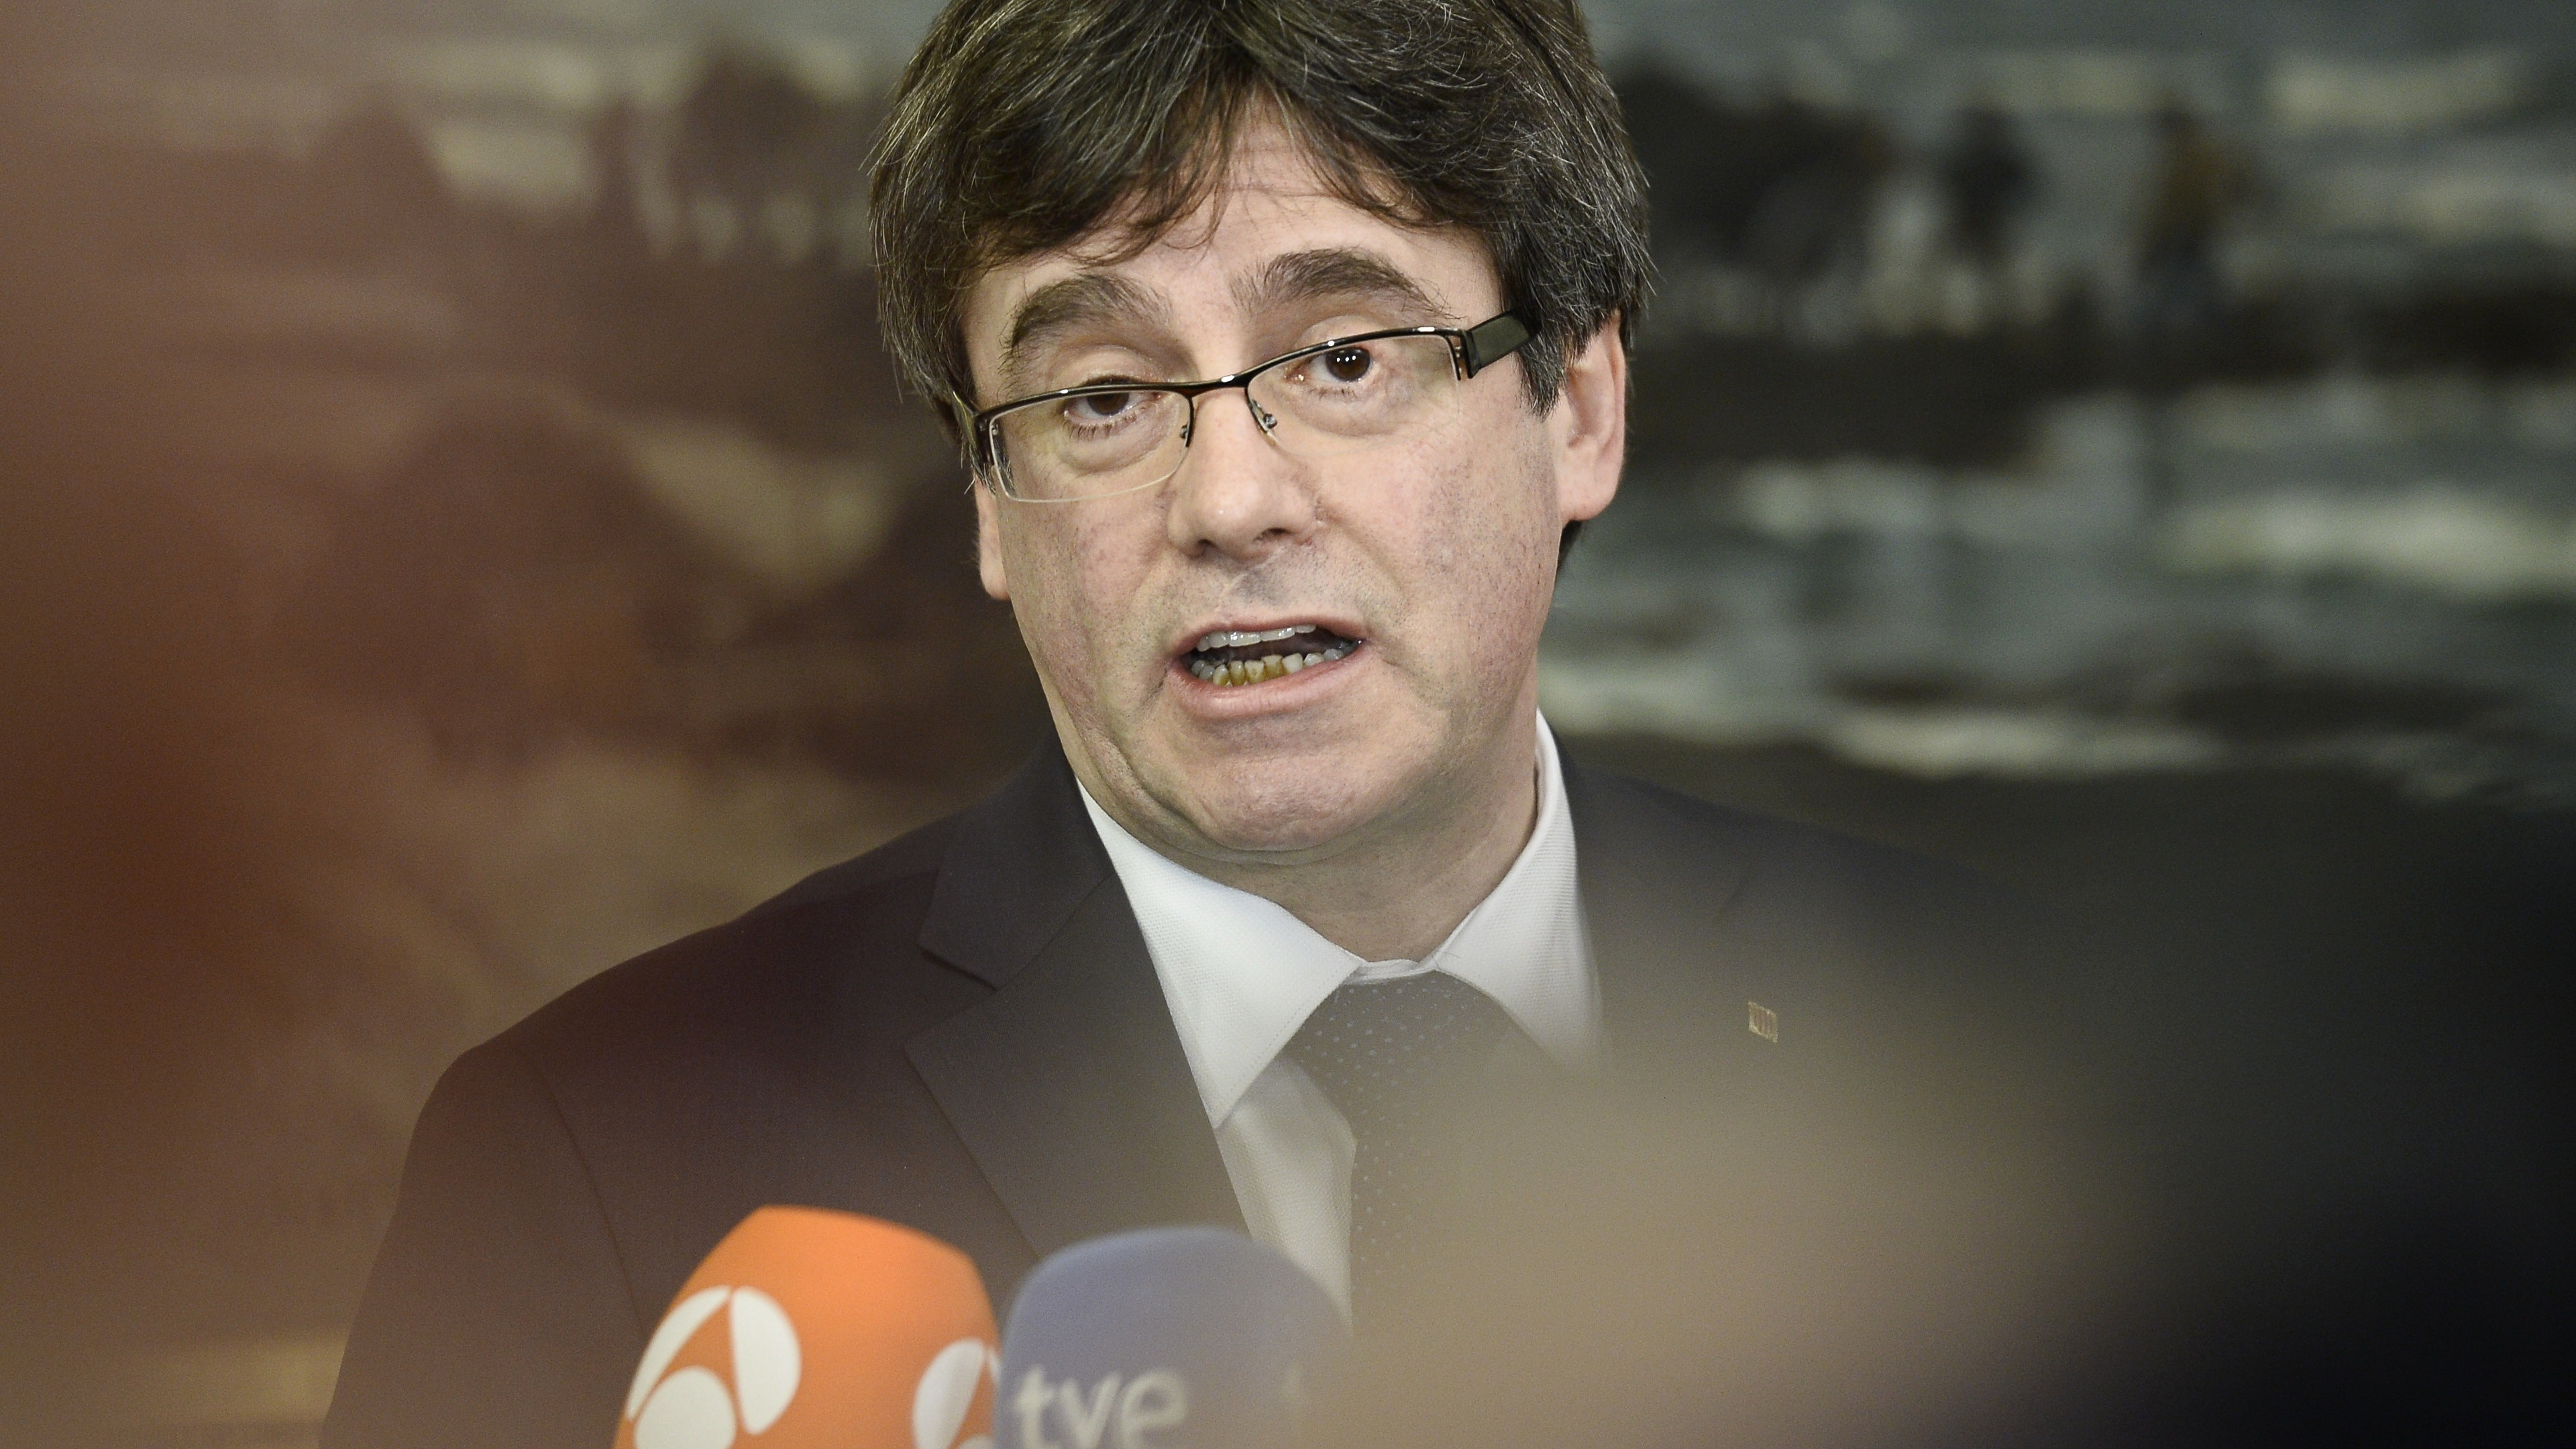 Catalan leader arrives in Denmark